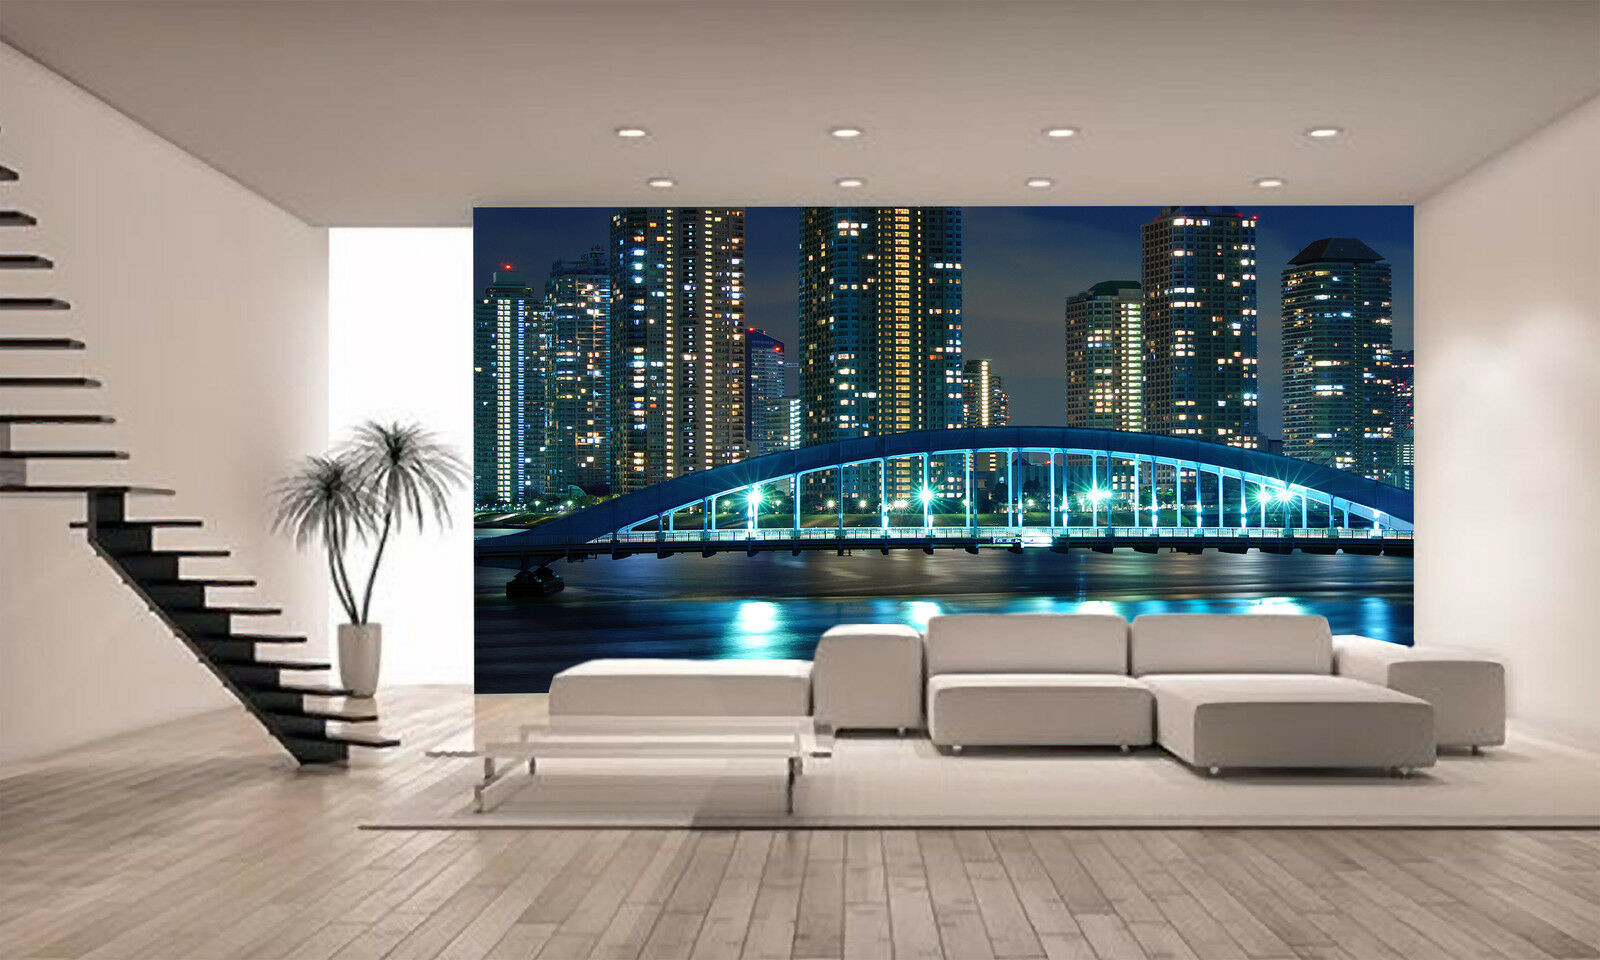 Night Tokyo Wall Mural Photo Wallpaper GIANT WALL DECOR PAPER POSTER